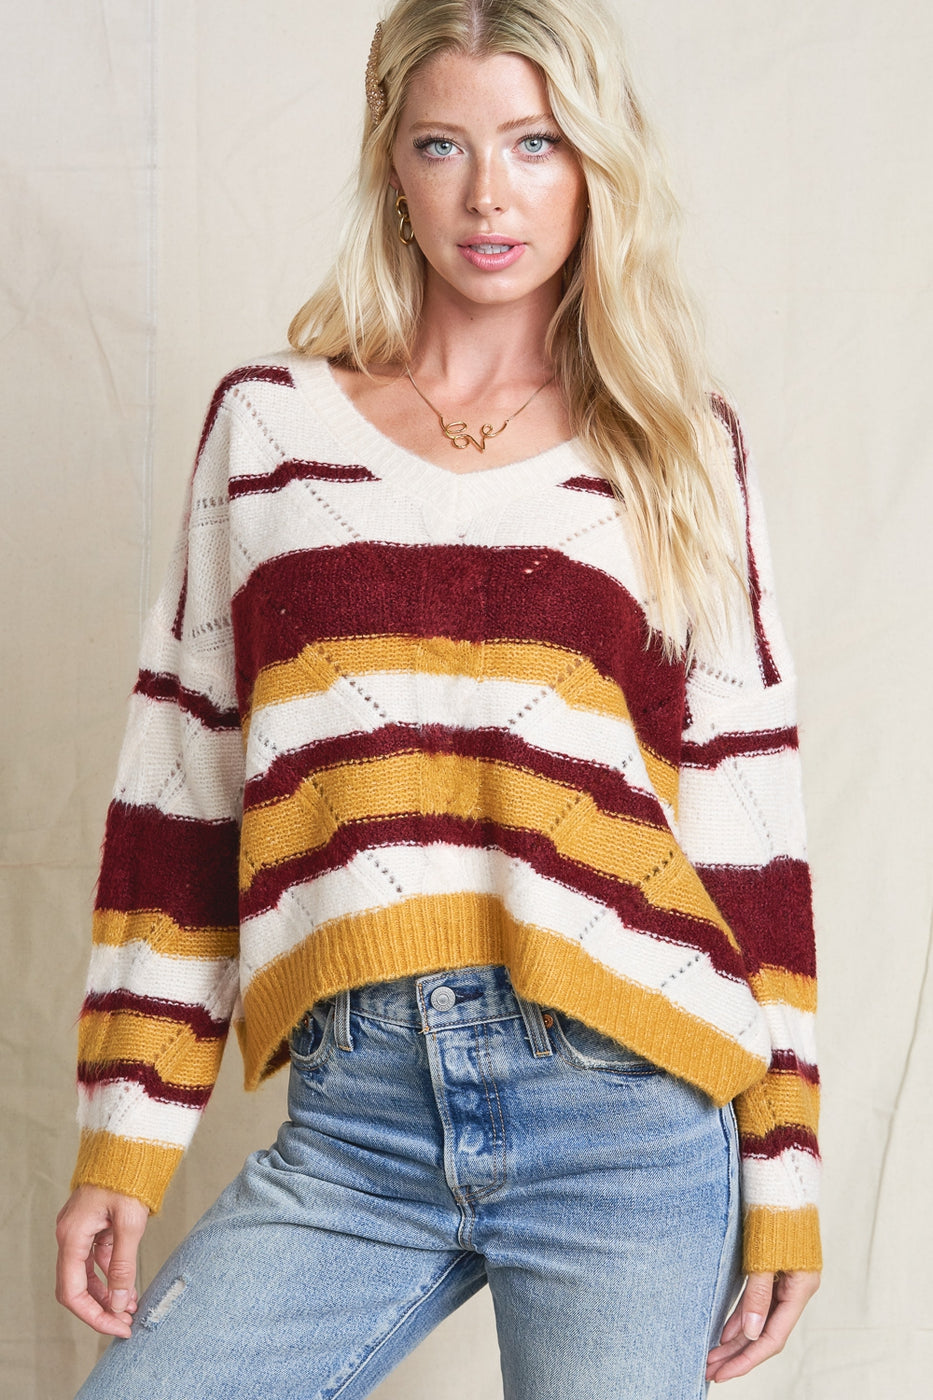 V neck finely knit stripe top slouchy, oversized silhouette  -  Crop Top